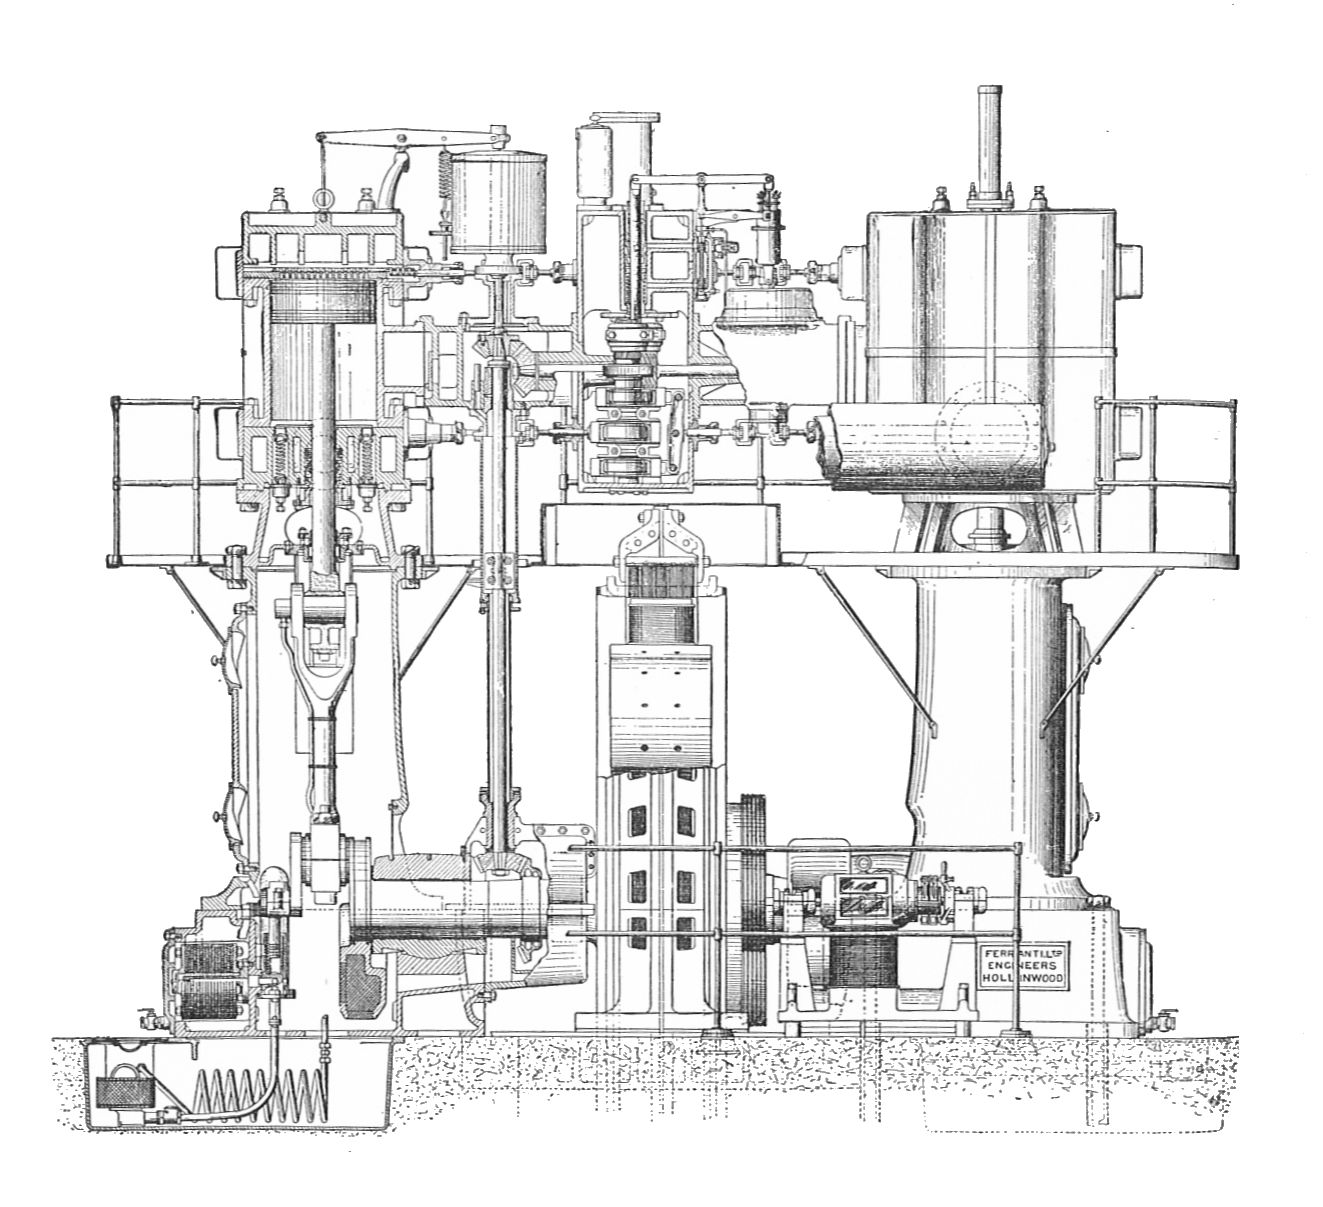 File:Ferranti engine, half section (Rankin Kennedy, Electrical ...